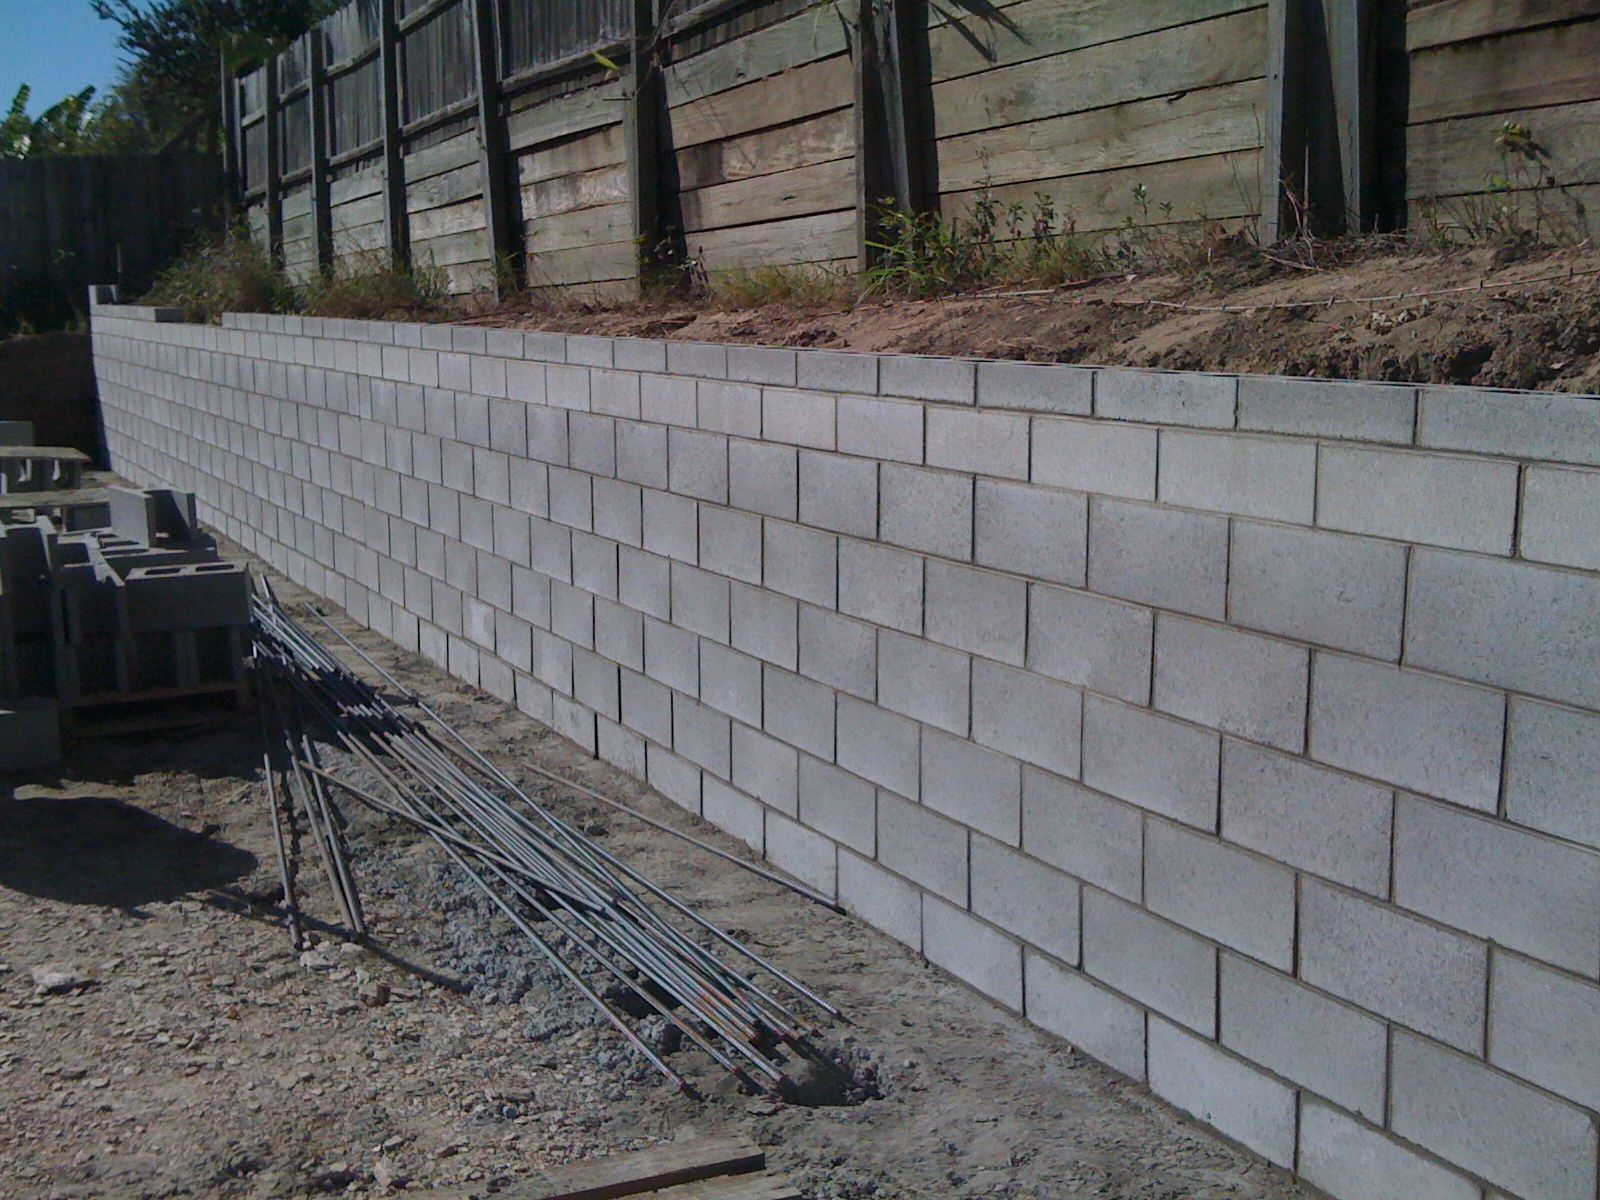 Concrete Block Retaining Wall Design contemporary ideas concrete retaining wall design smartness concrete wall design example unique retaining examples Best 25 Concrete Block Retaining Wall Ideas On Pinterest Retaining Blocks Decorative Cinder Blocks And Decorative Concrete Blocks